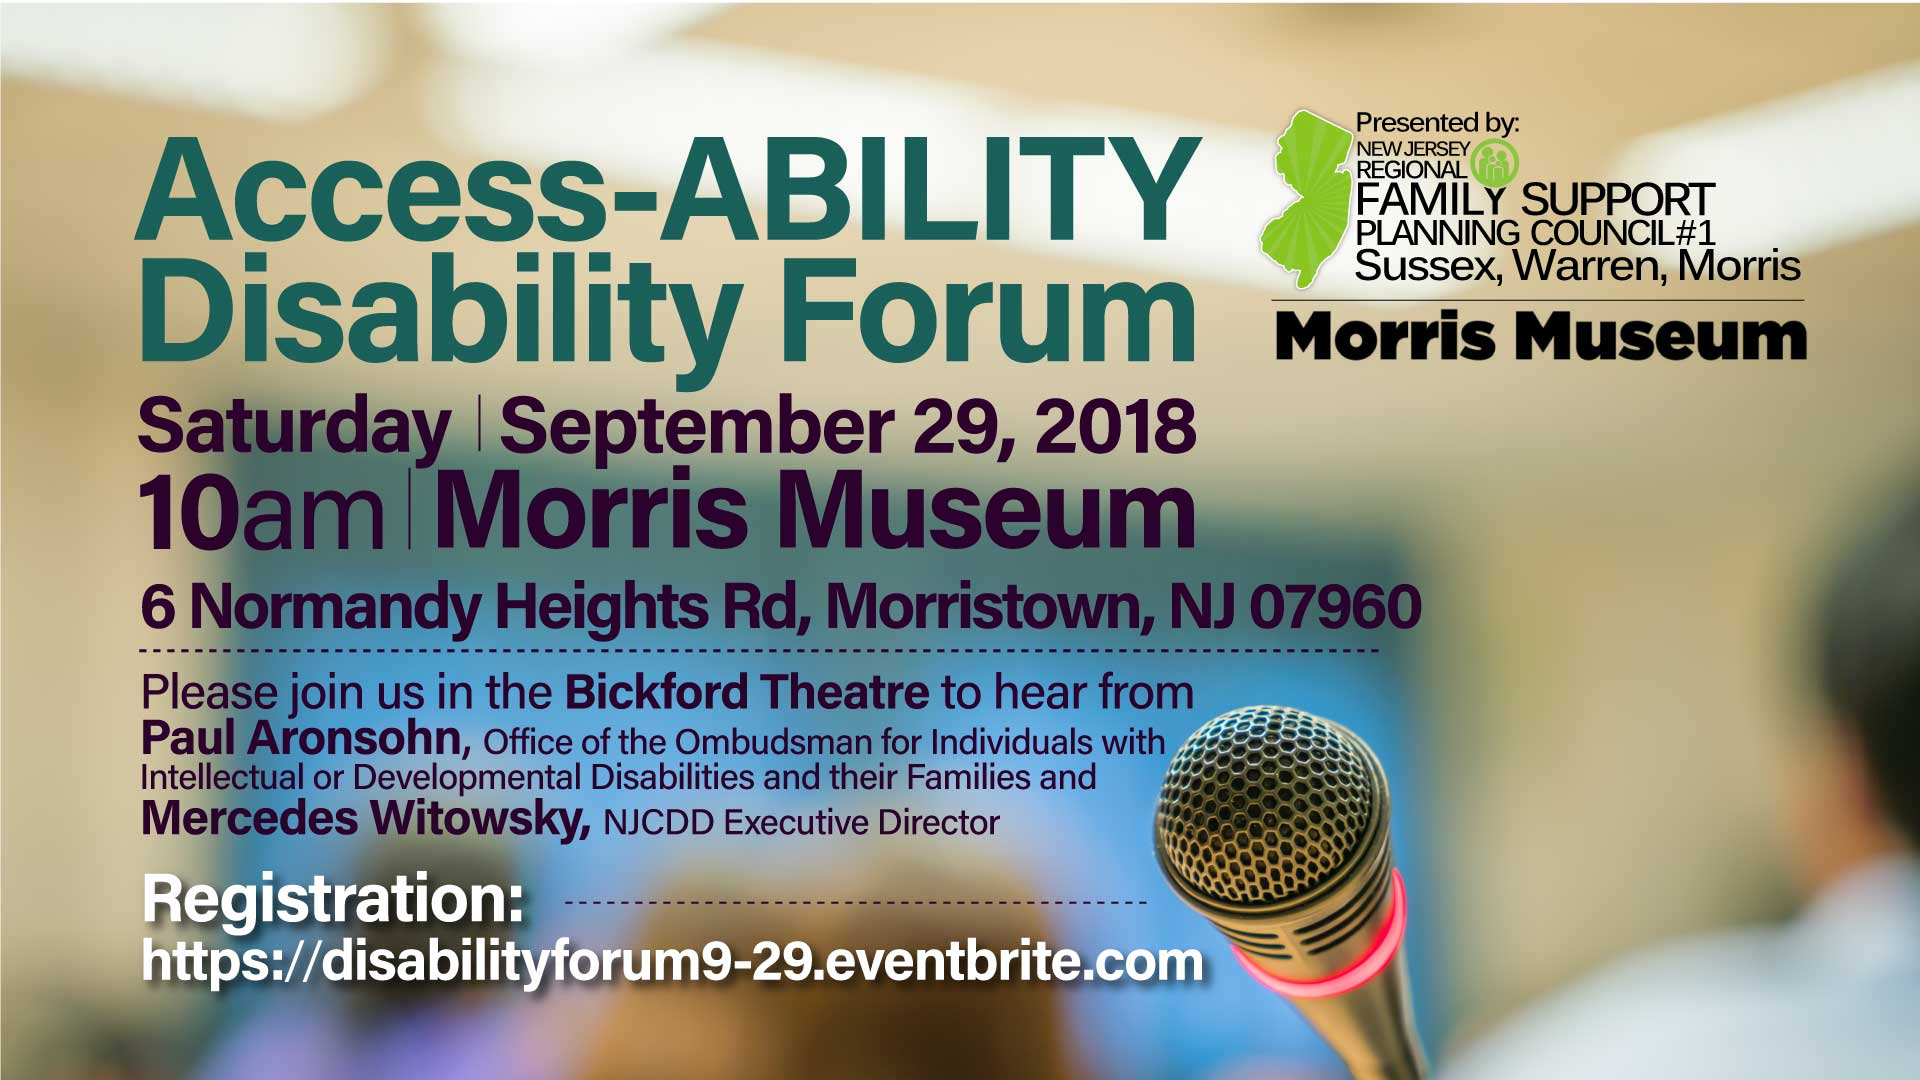 RFSPC1-Access-ABILITY-Disability-Forum-Sept 29 2018